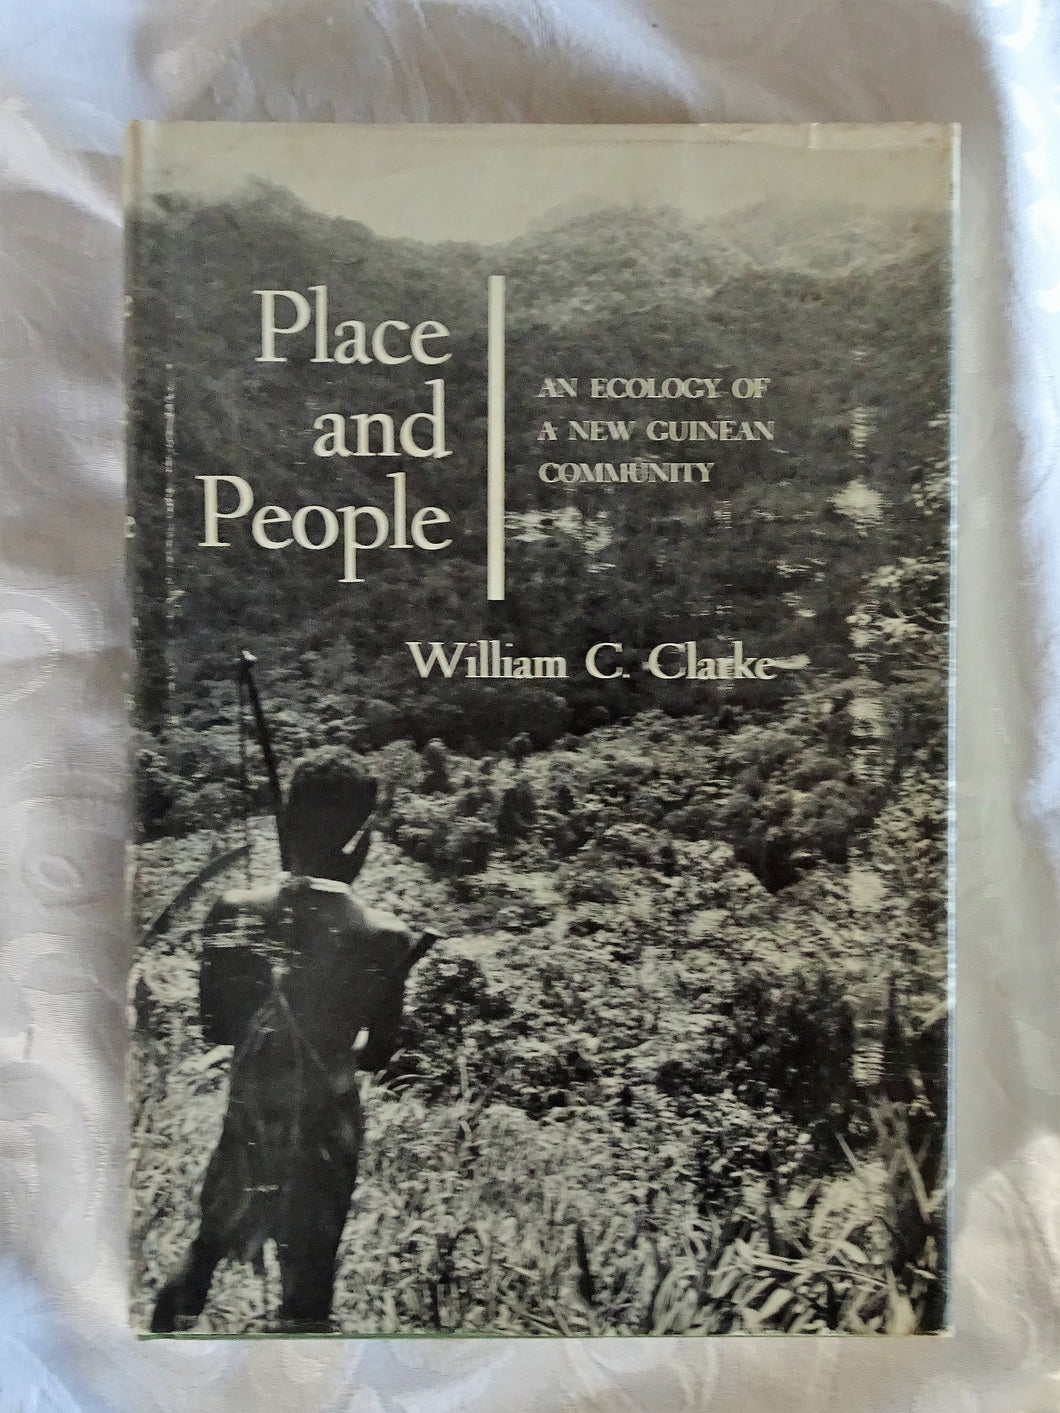 Place and People by William C. Clarke